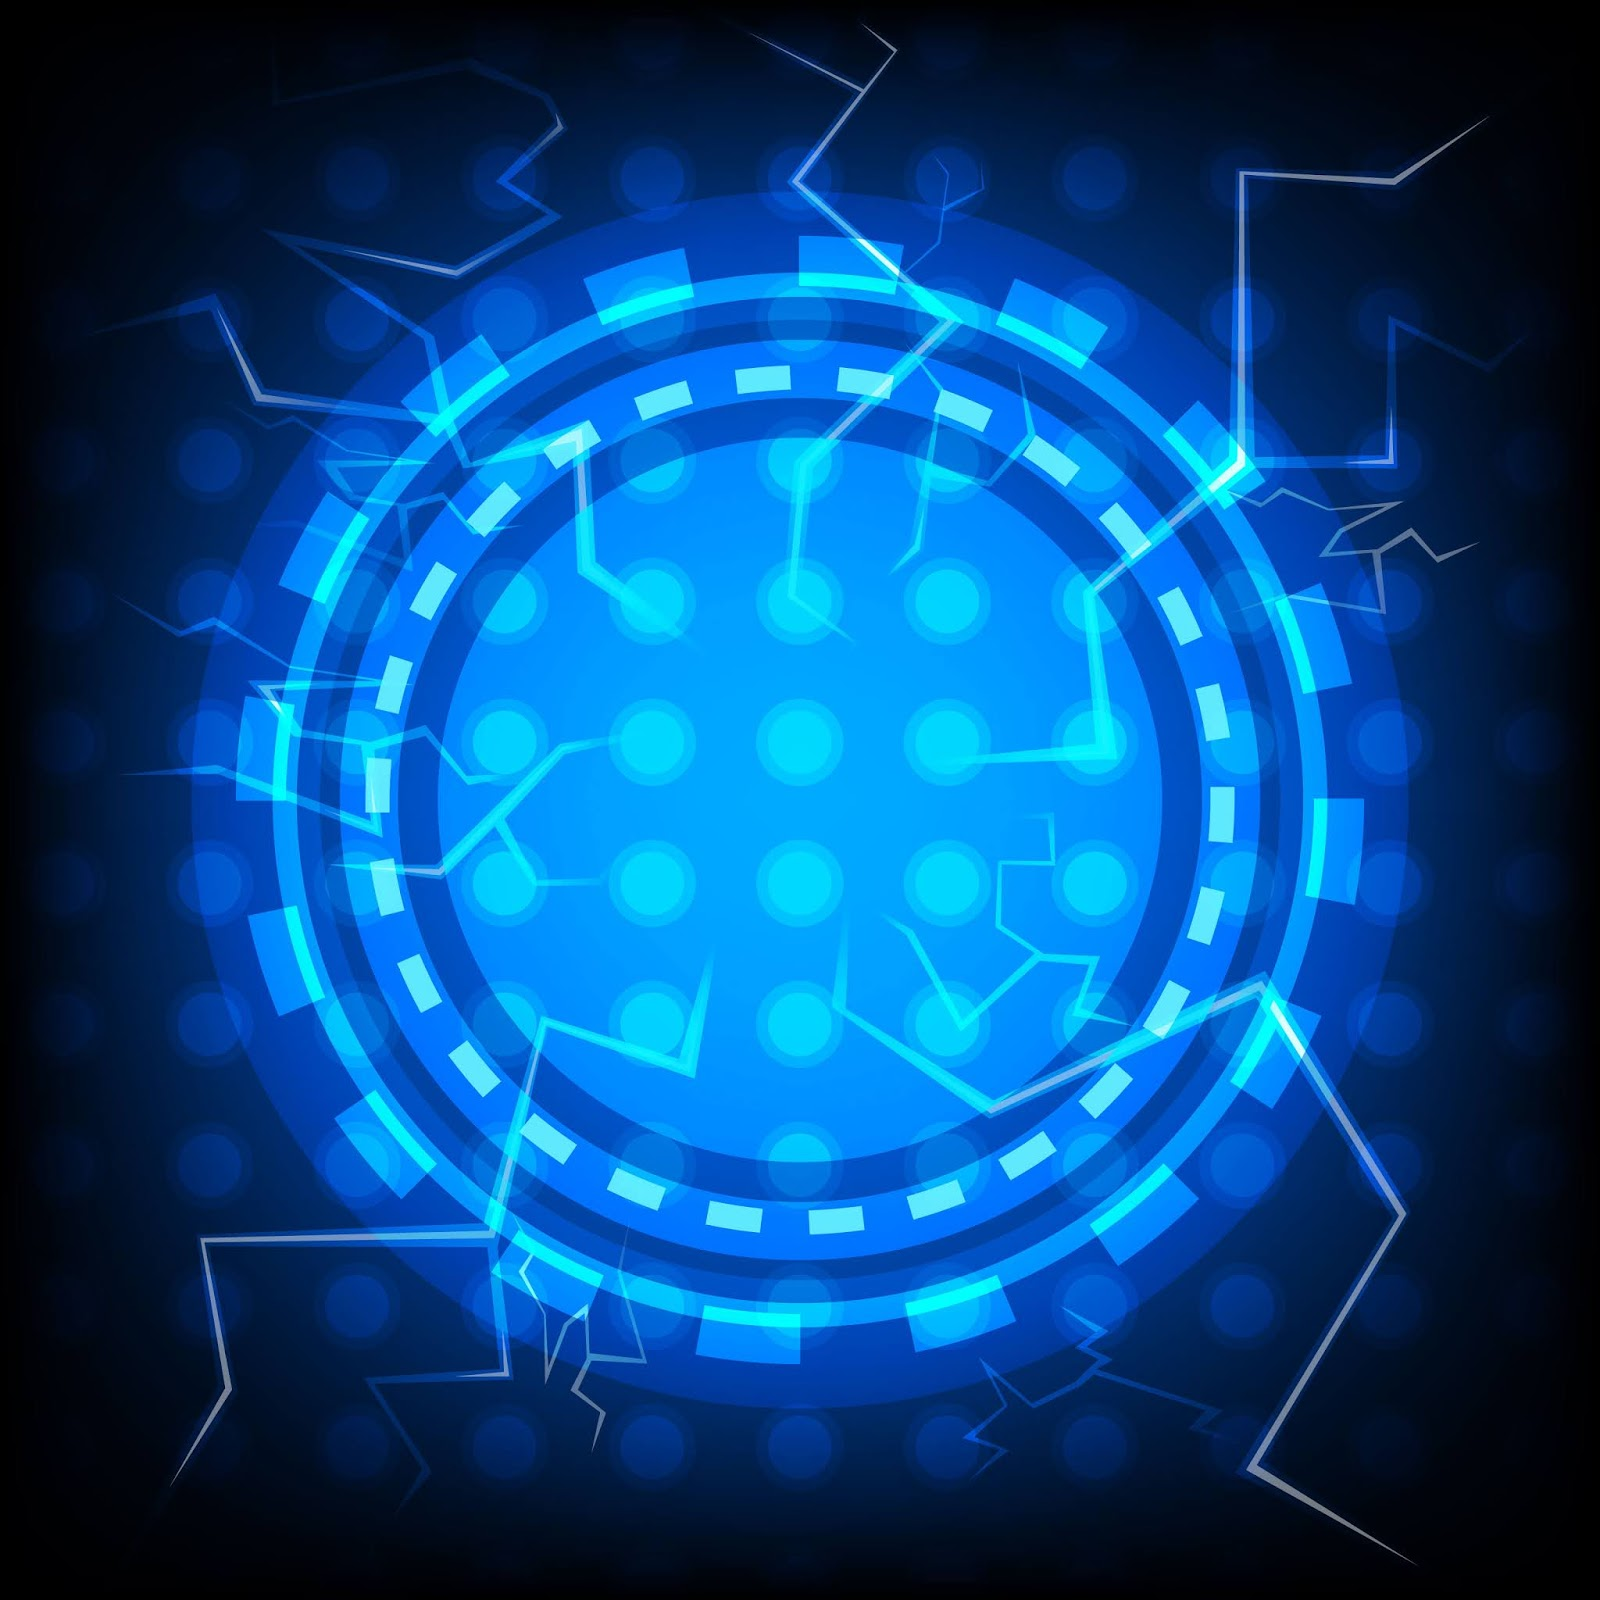 Abstract Vector Thunderbolt Technology Background Free Download Vector CDR, AI, EPS and PNG Formats